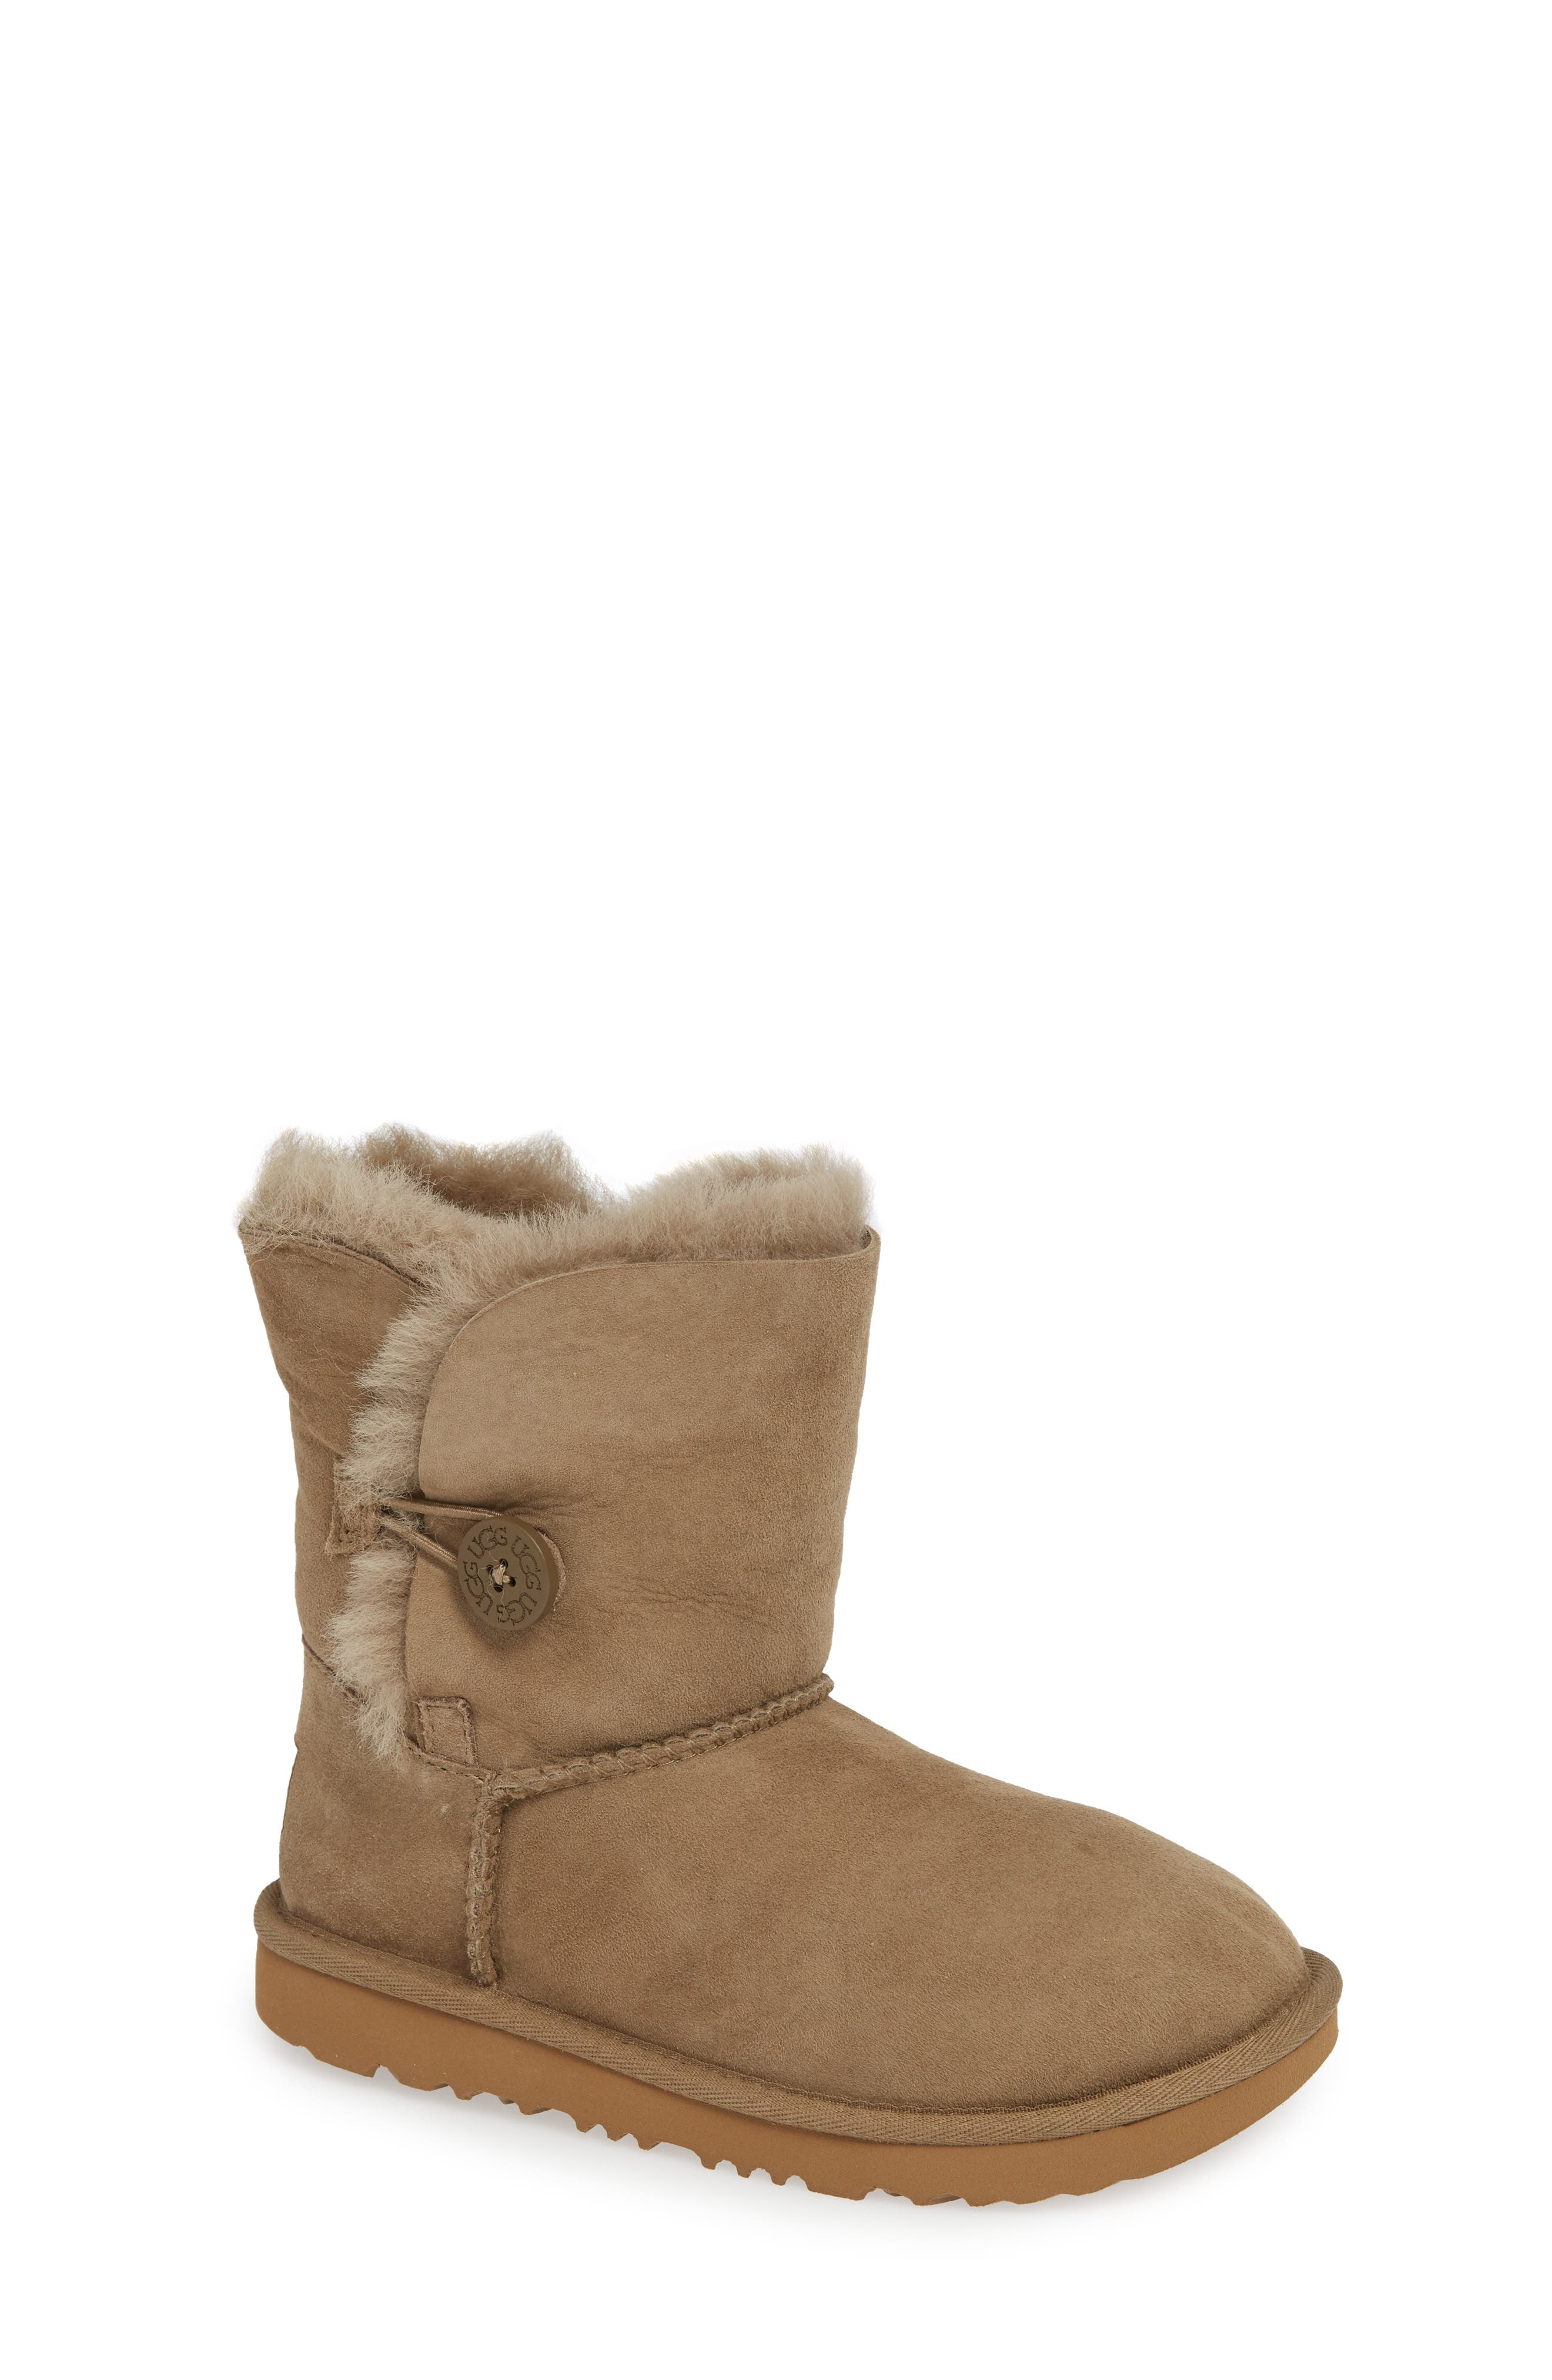 a31c7ff0fe6 authentic kids ugg boots size 12 6efd6 caa32